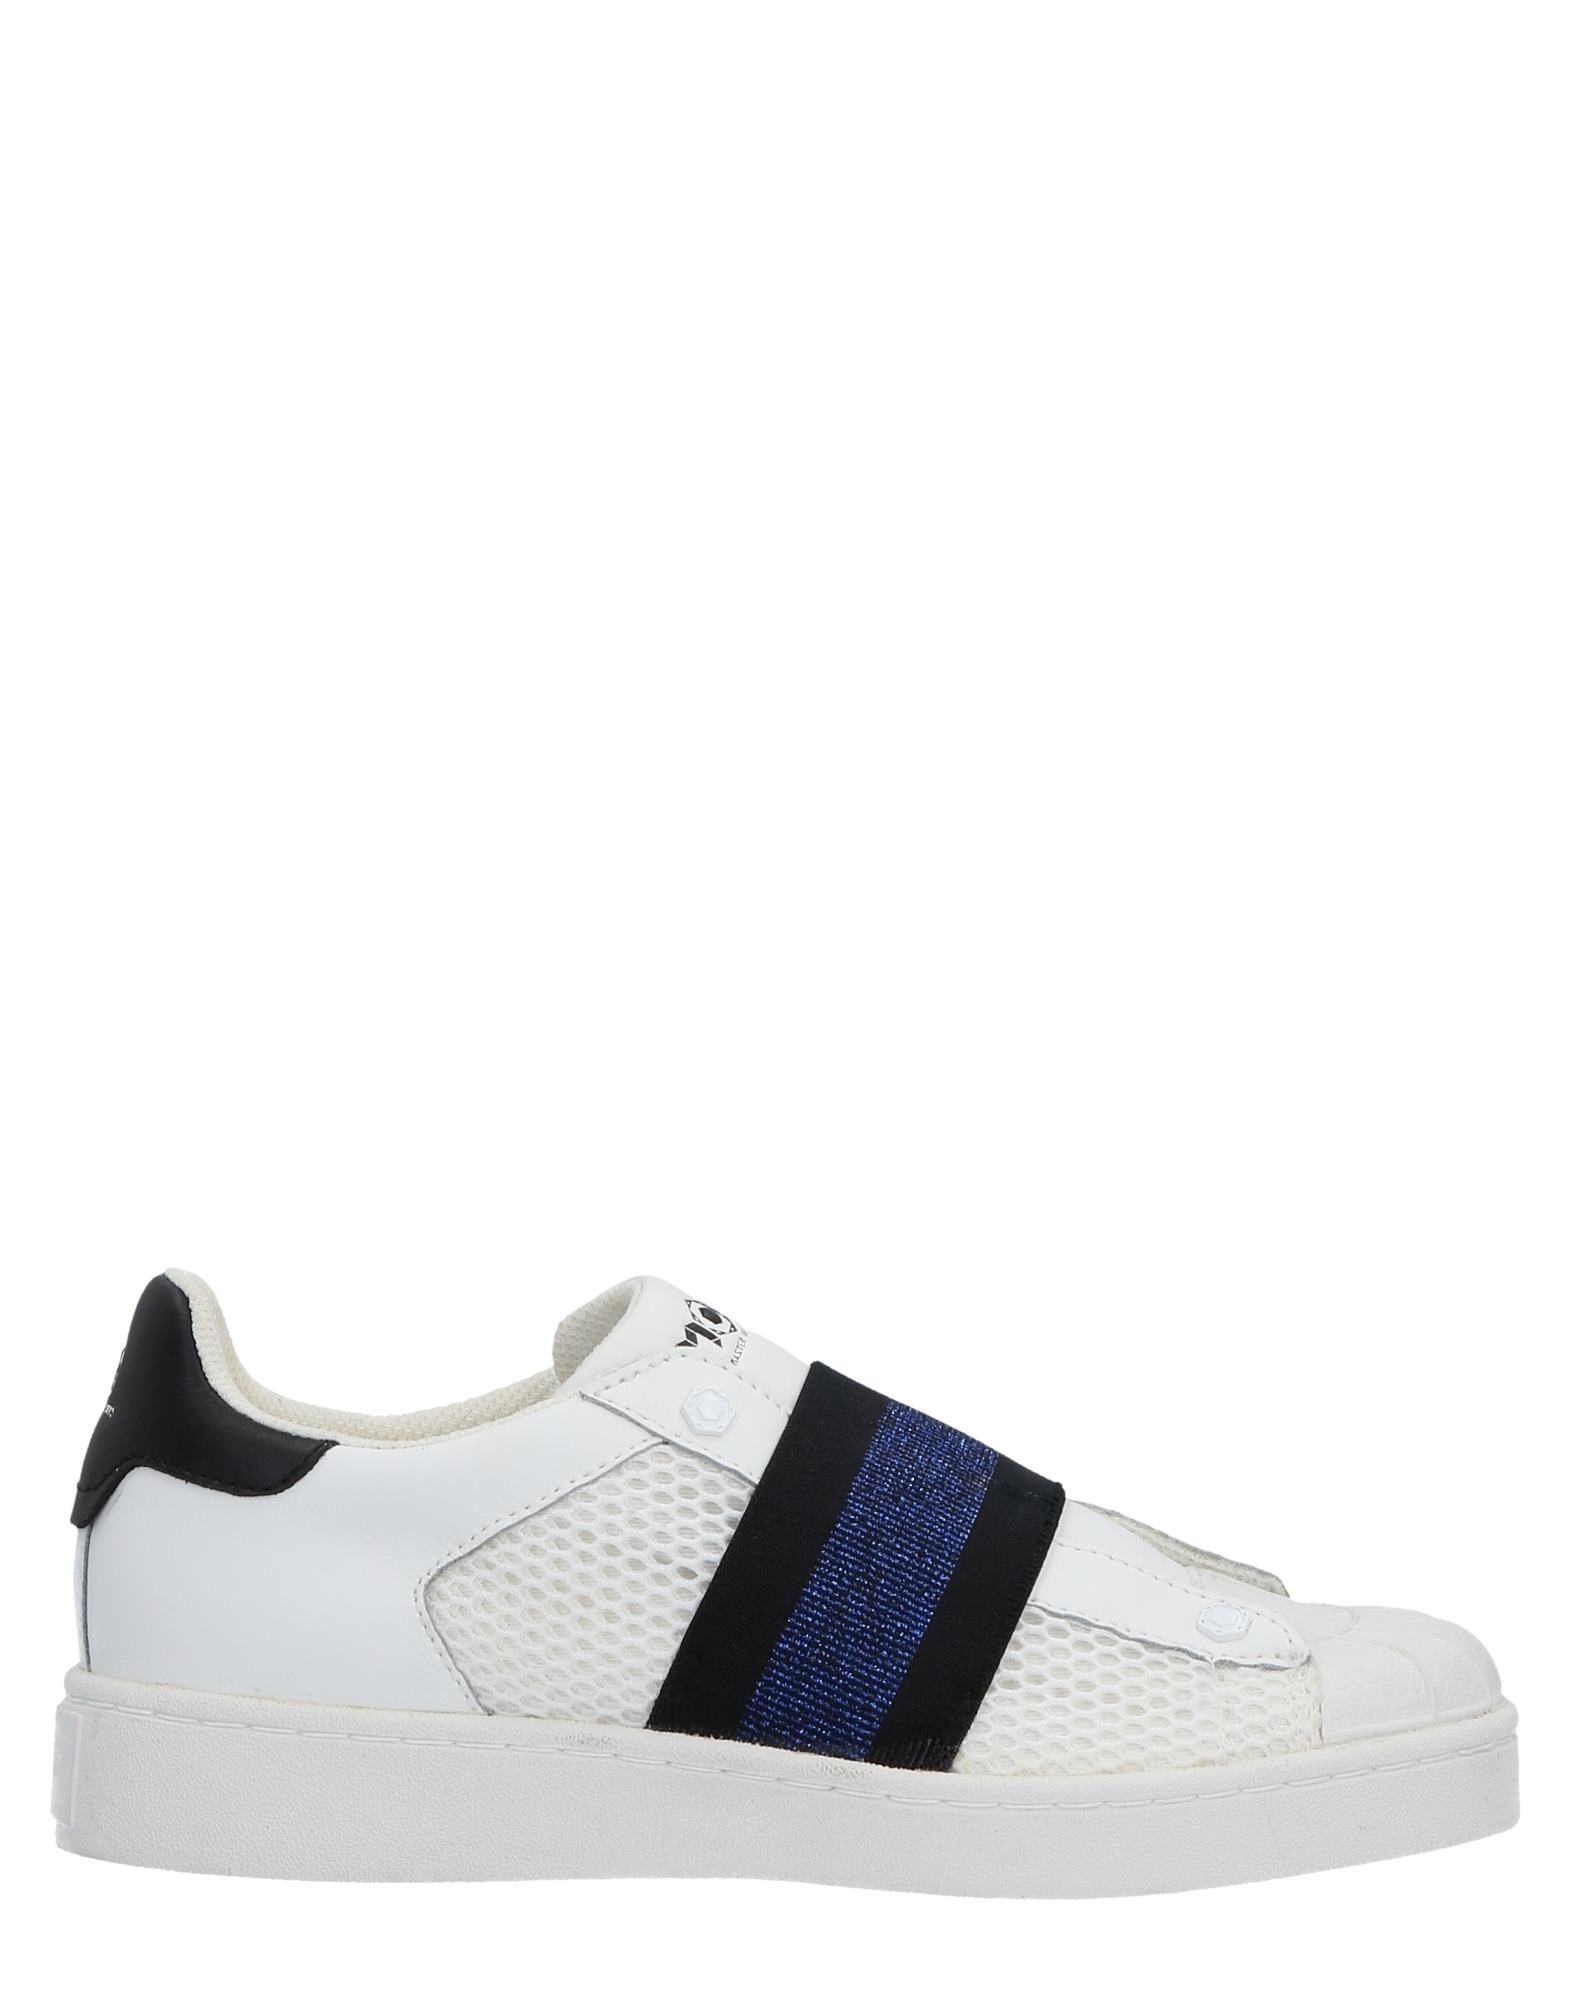 Sneakers Moa Master Of Arts Donna - 11509724AW